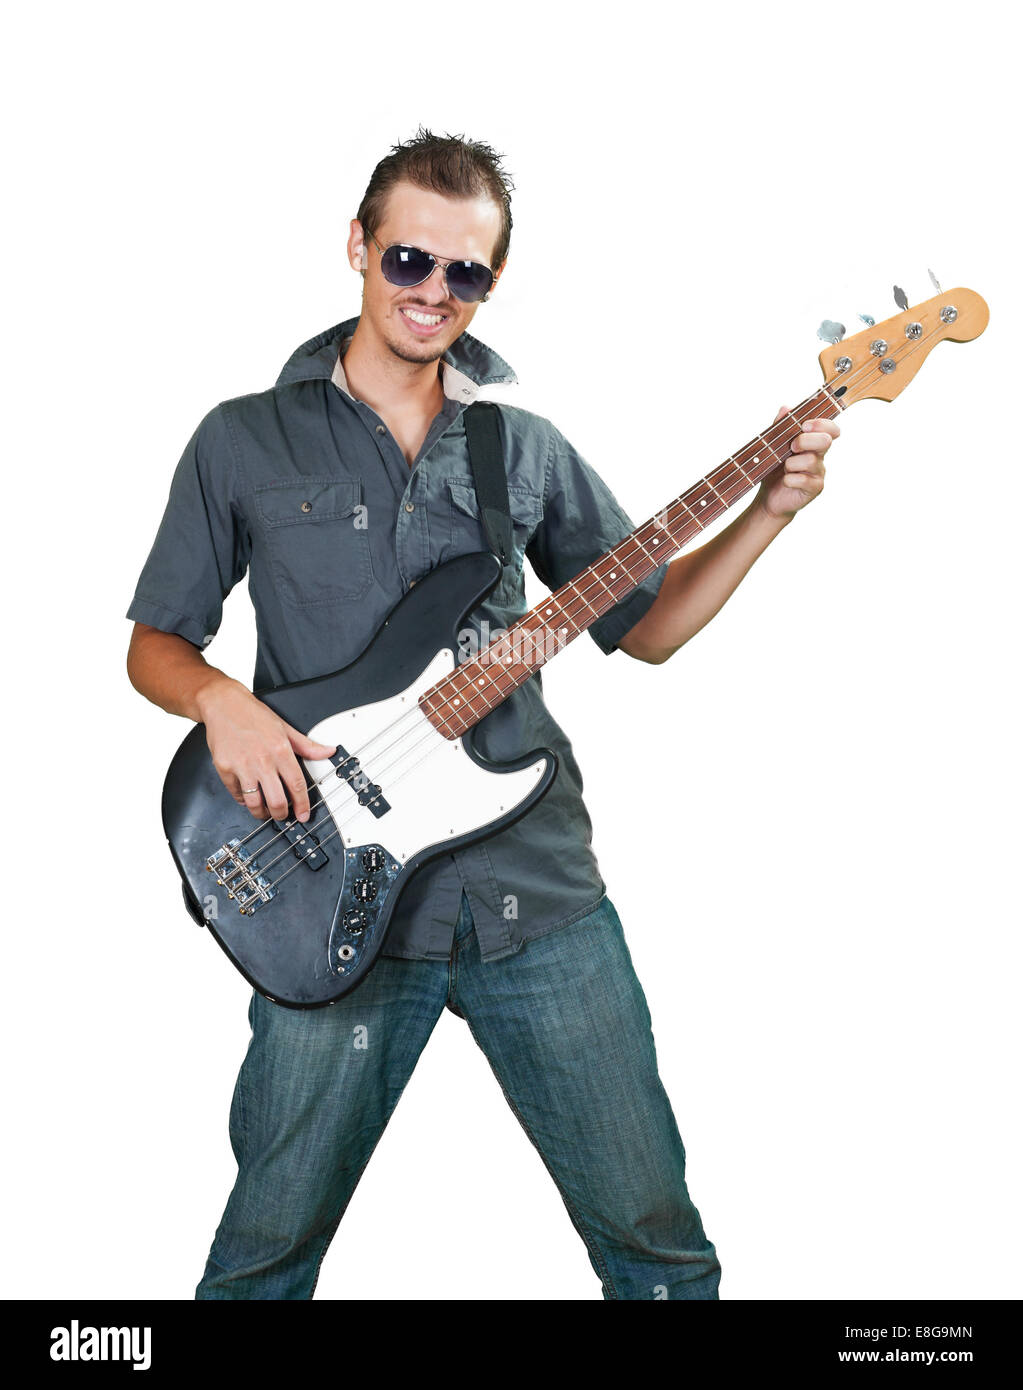 bass guitar player isolated stock photos bass guitar player isolated stock images alamy. Black Bedroom Furniture Sets. Home Design Ideas